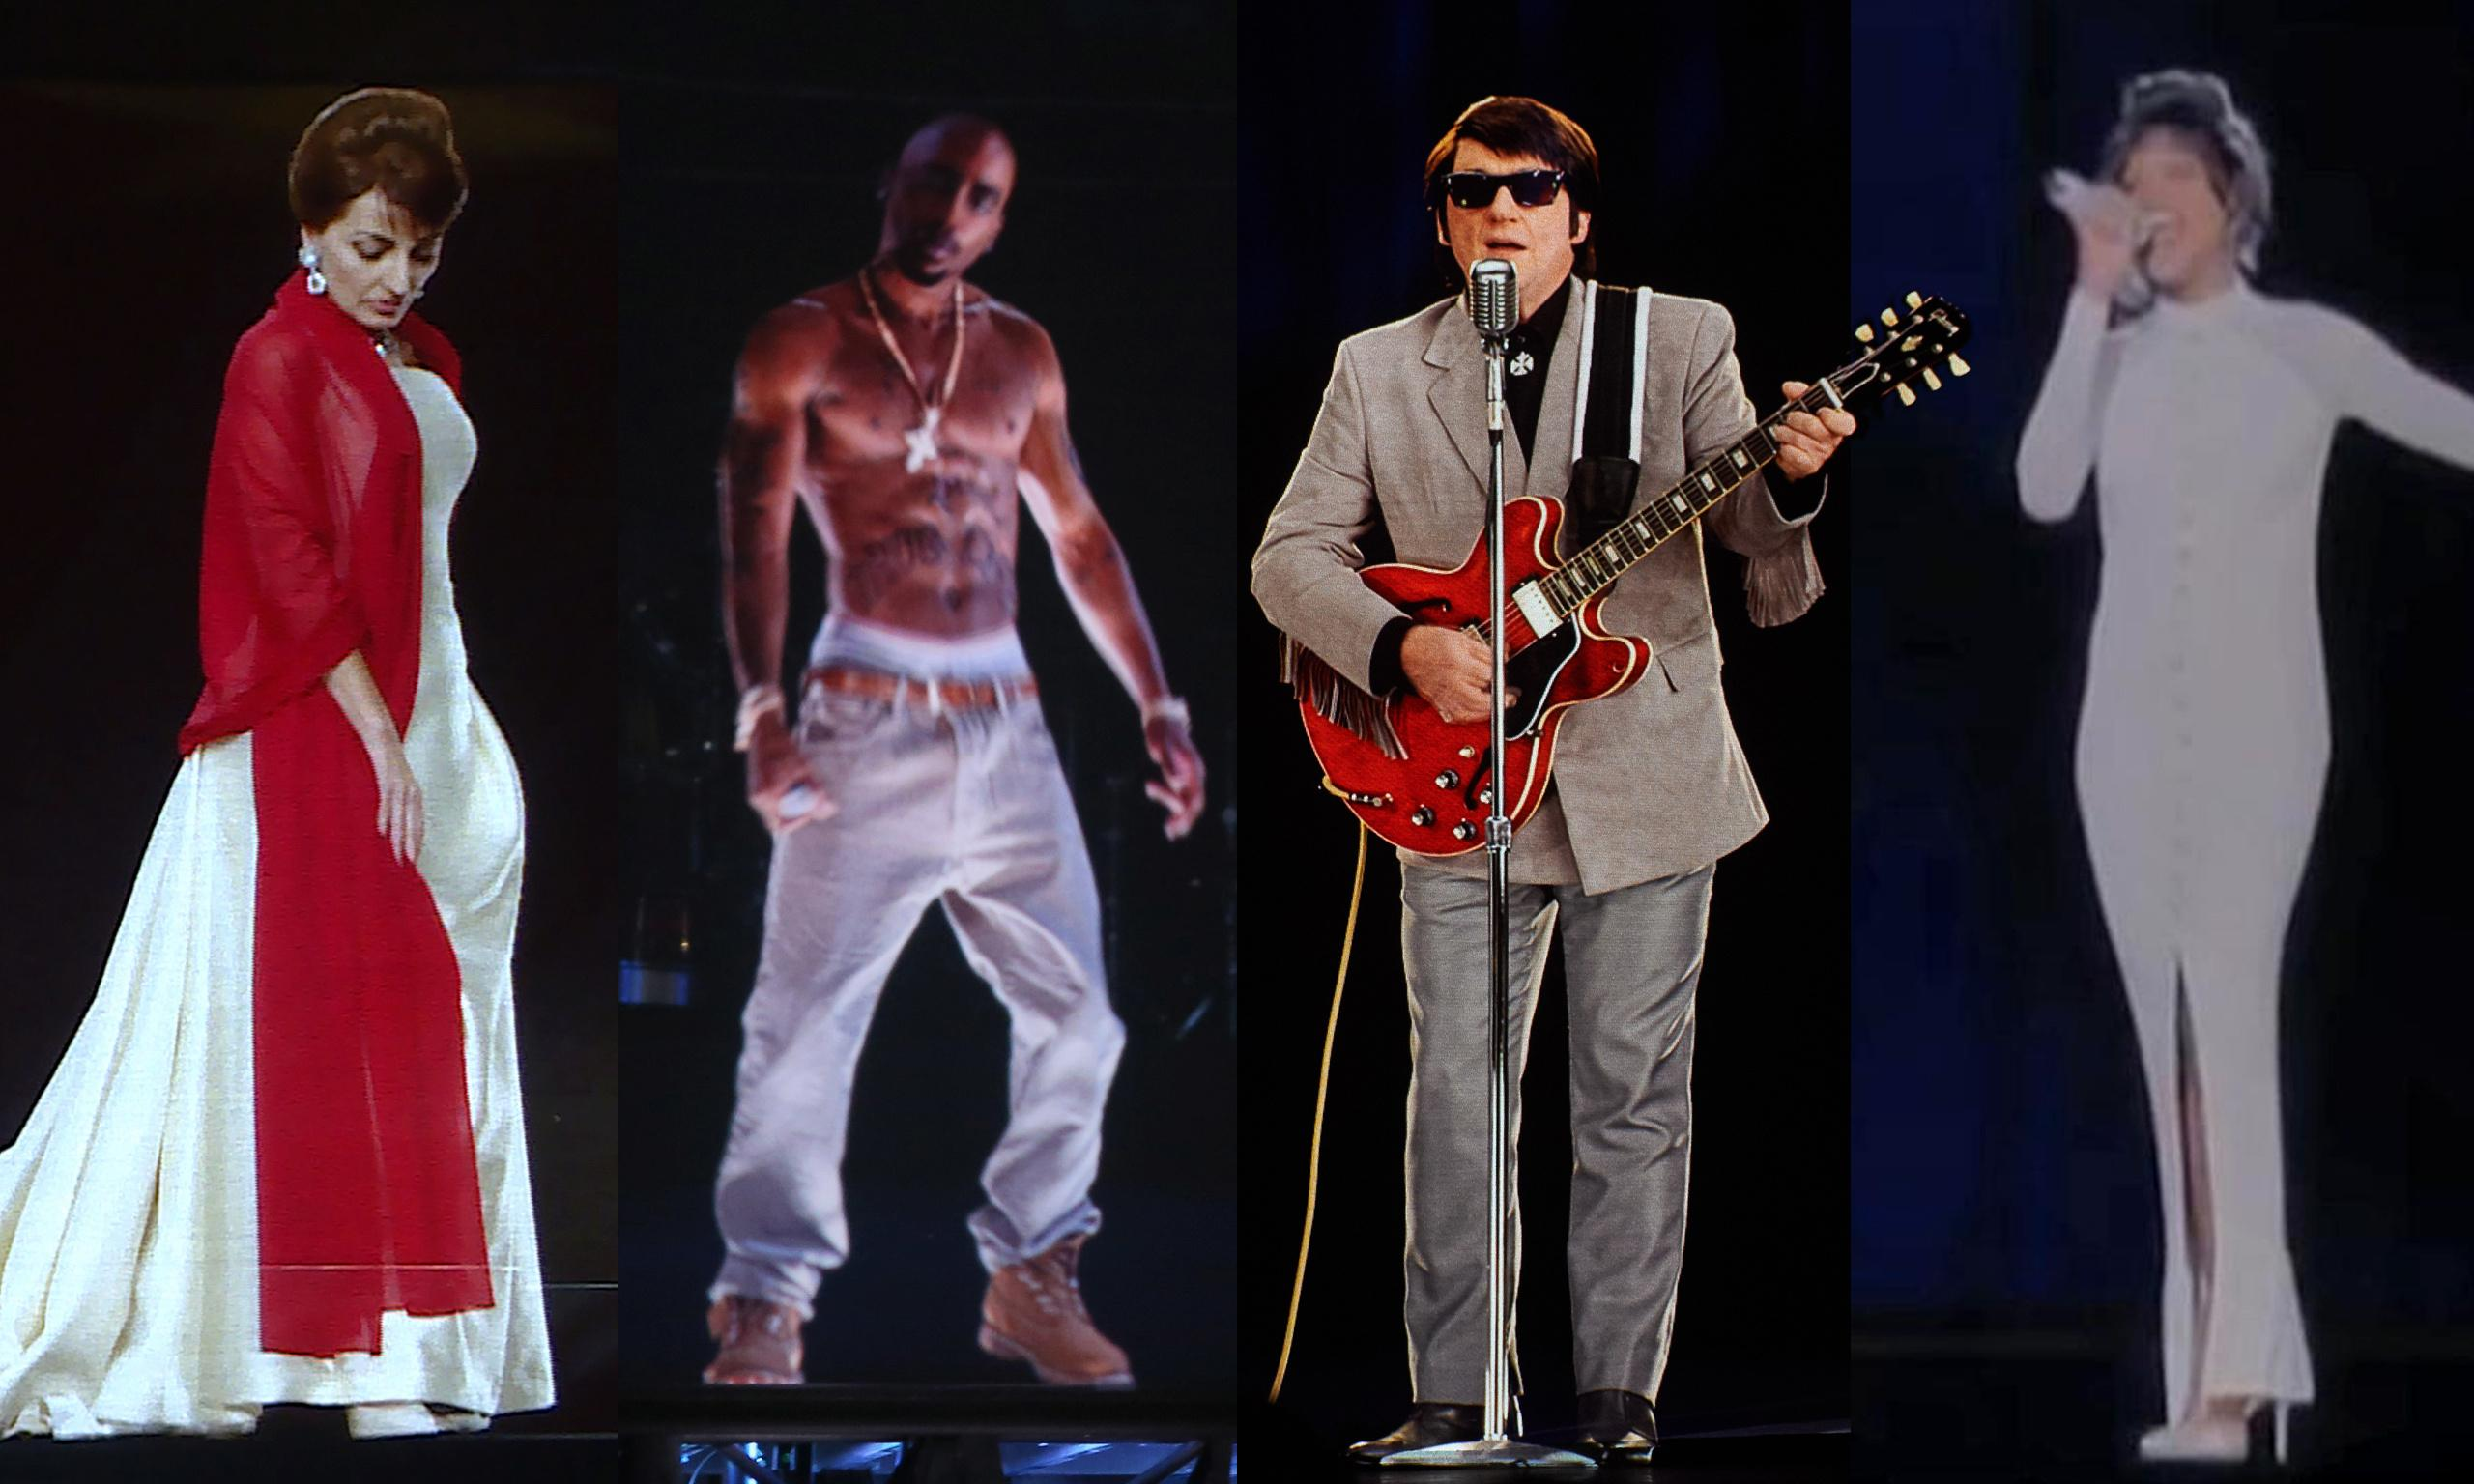 Back to life, back to virtual reality as music stars return to stage as holograms